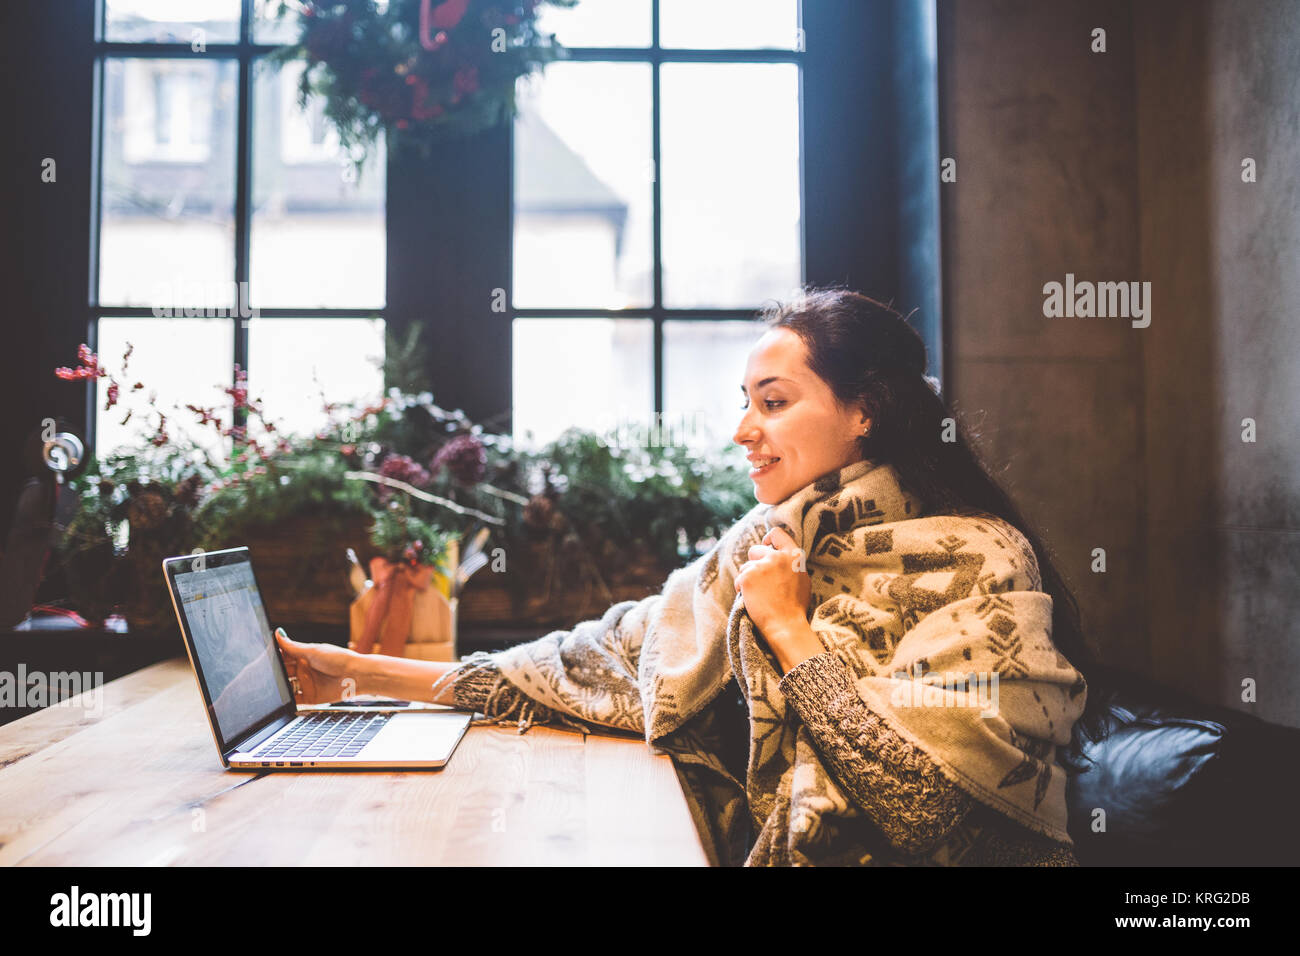 beautiful young girl uses laptop technology, types text looking at the monitor in a cafe by the window at wooden - Stock Image